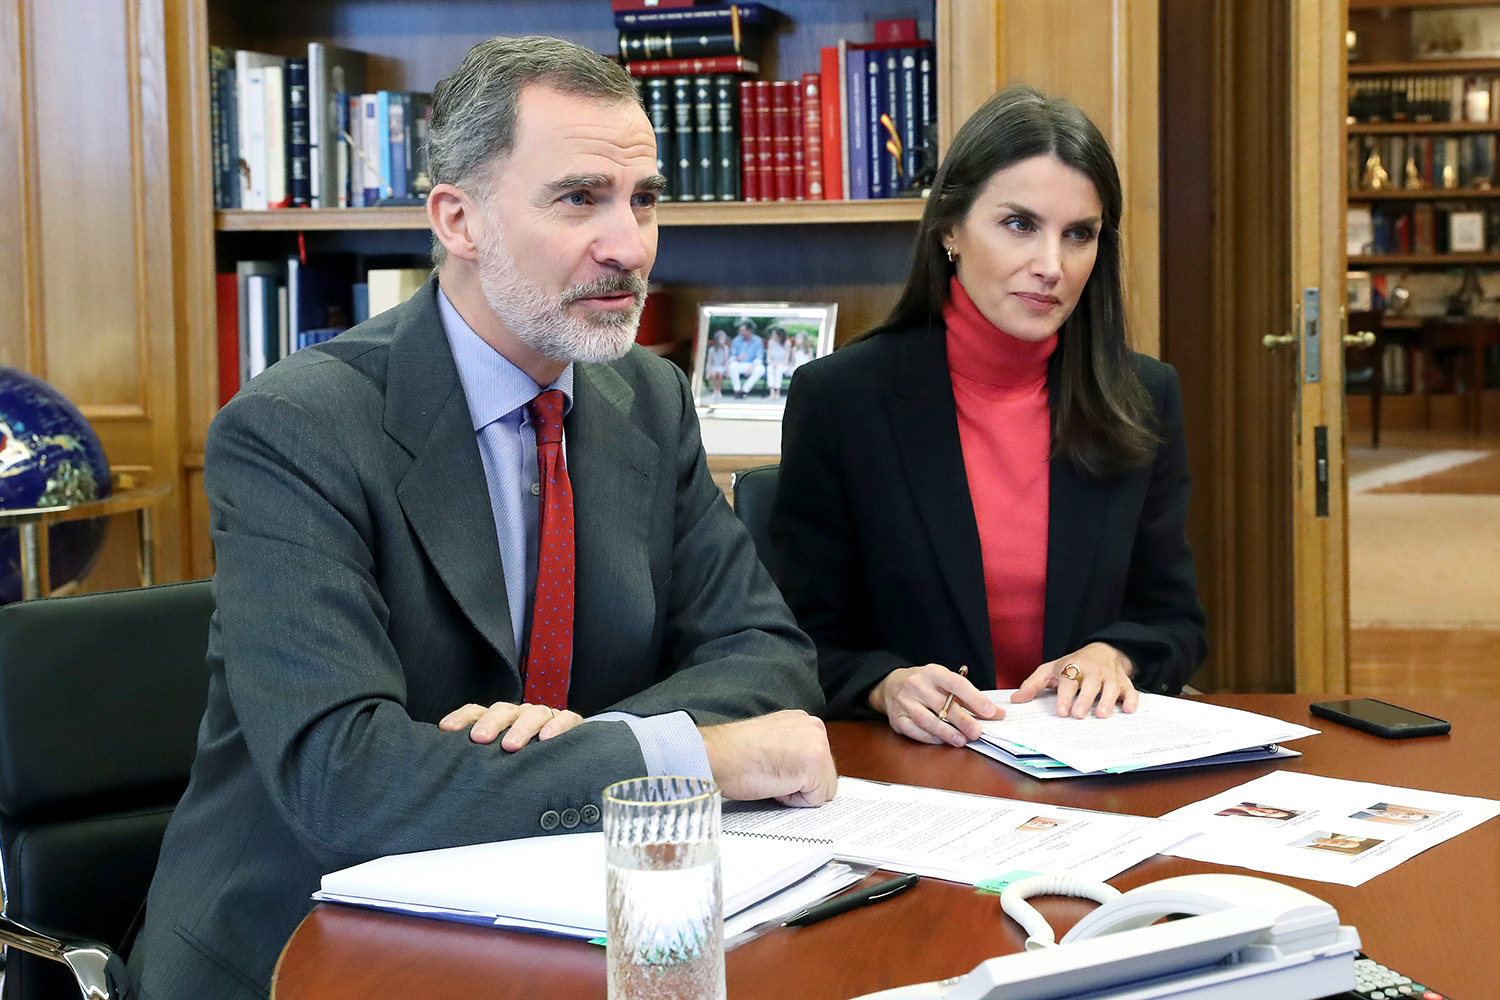 King Felipe VI of Spain, Queen Letizia of Spain attend video conference with a group of merchants from Oviedo at Zarzuela Palace on March 31, 2020 in Madrid, Spain